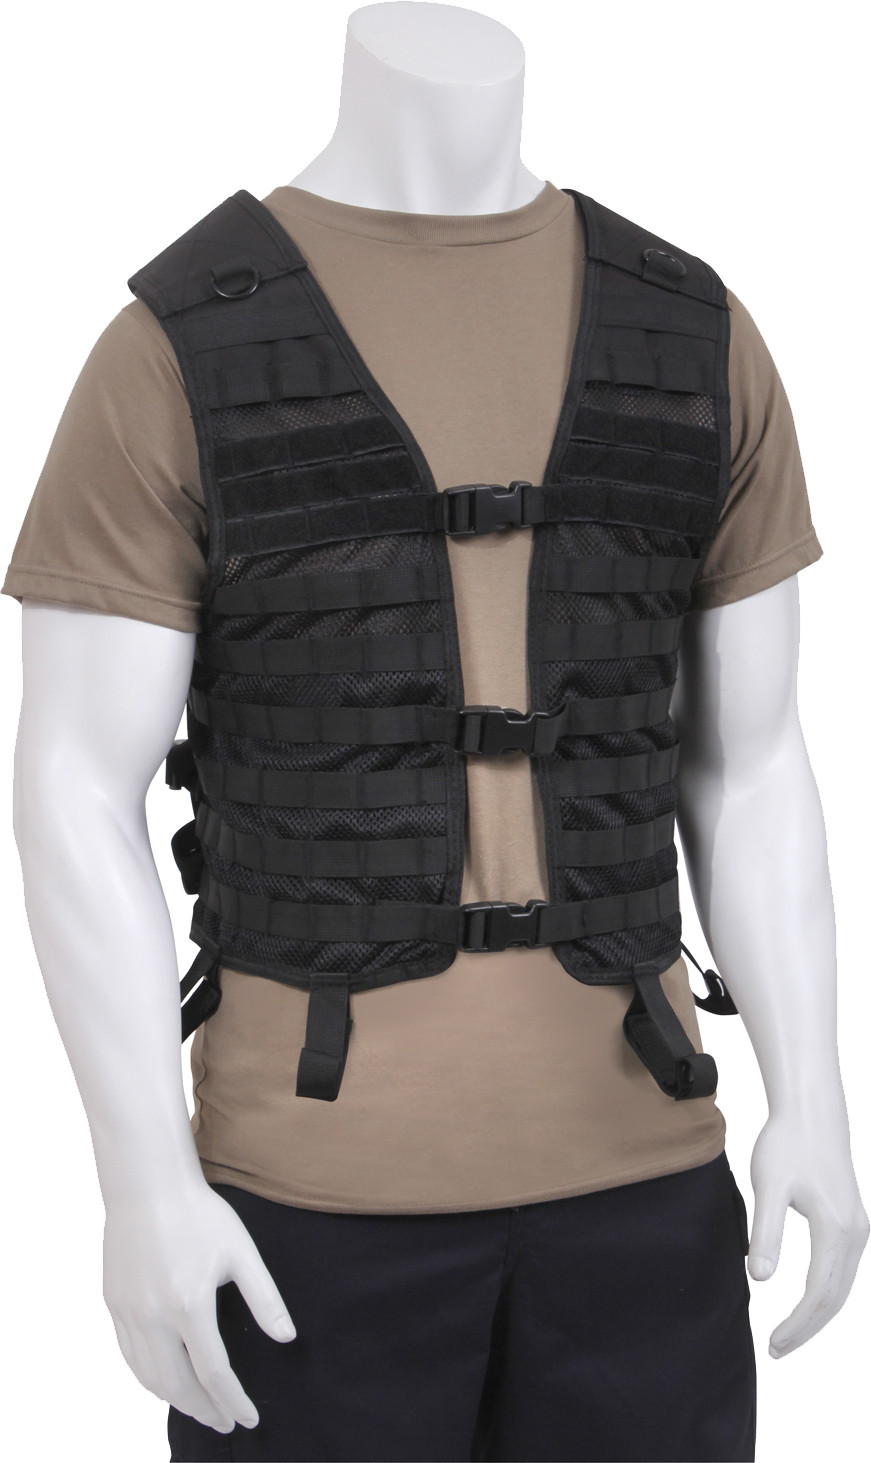 Black Military MOLLE Adjustable Lightweight Mesh Tactical Utility Vest 73a3c7c356a